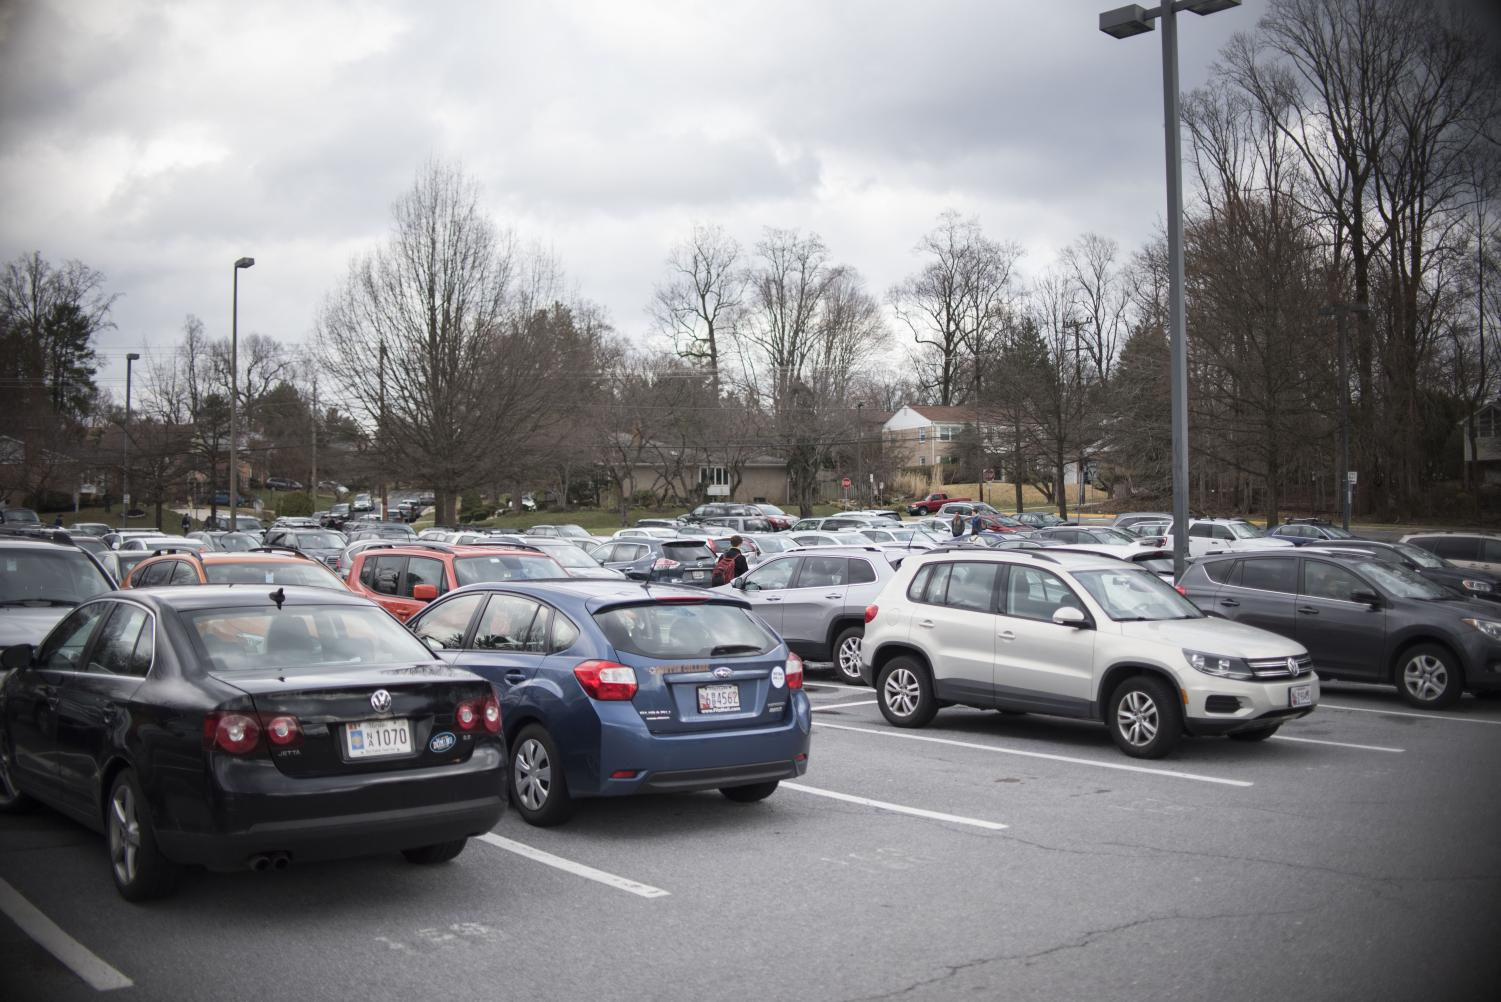 Cars sit parked in the Whitman parking lot. The lot is the scene of a minor accident on a near daily basis. Photo by Annabelle Gordon.